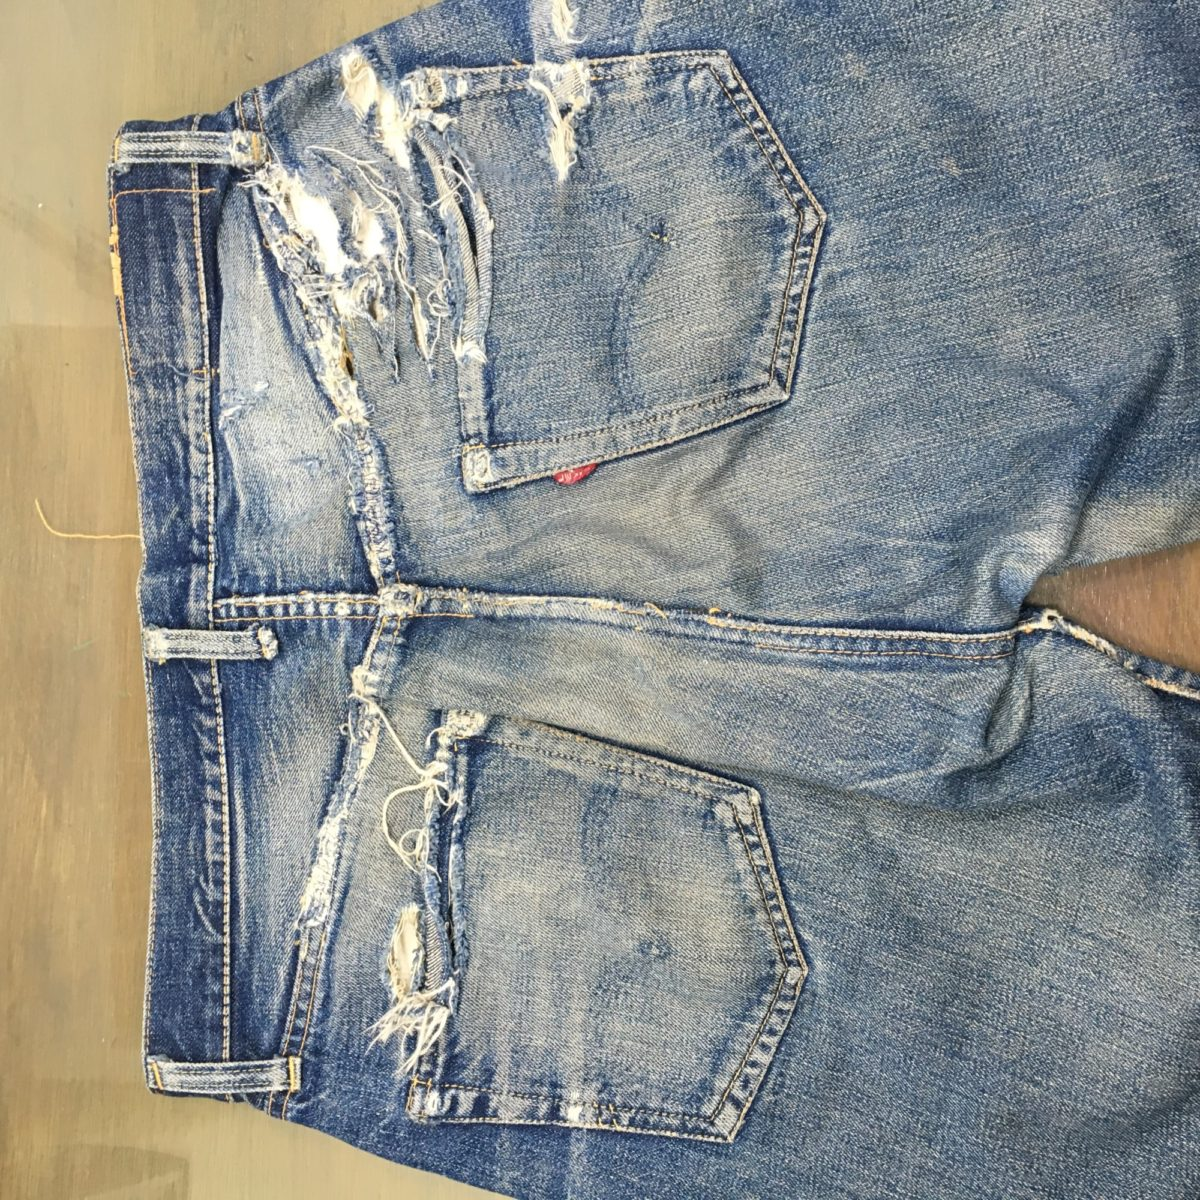 denimrepair